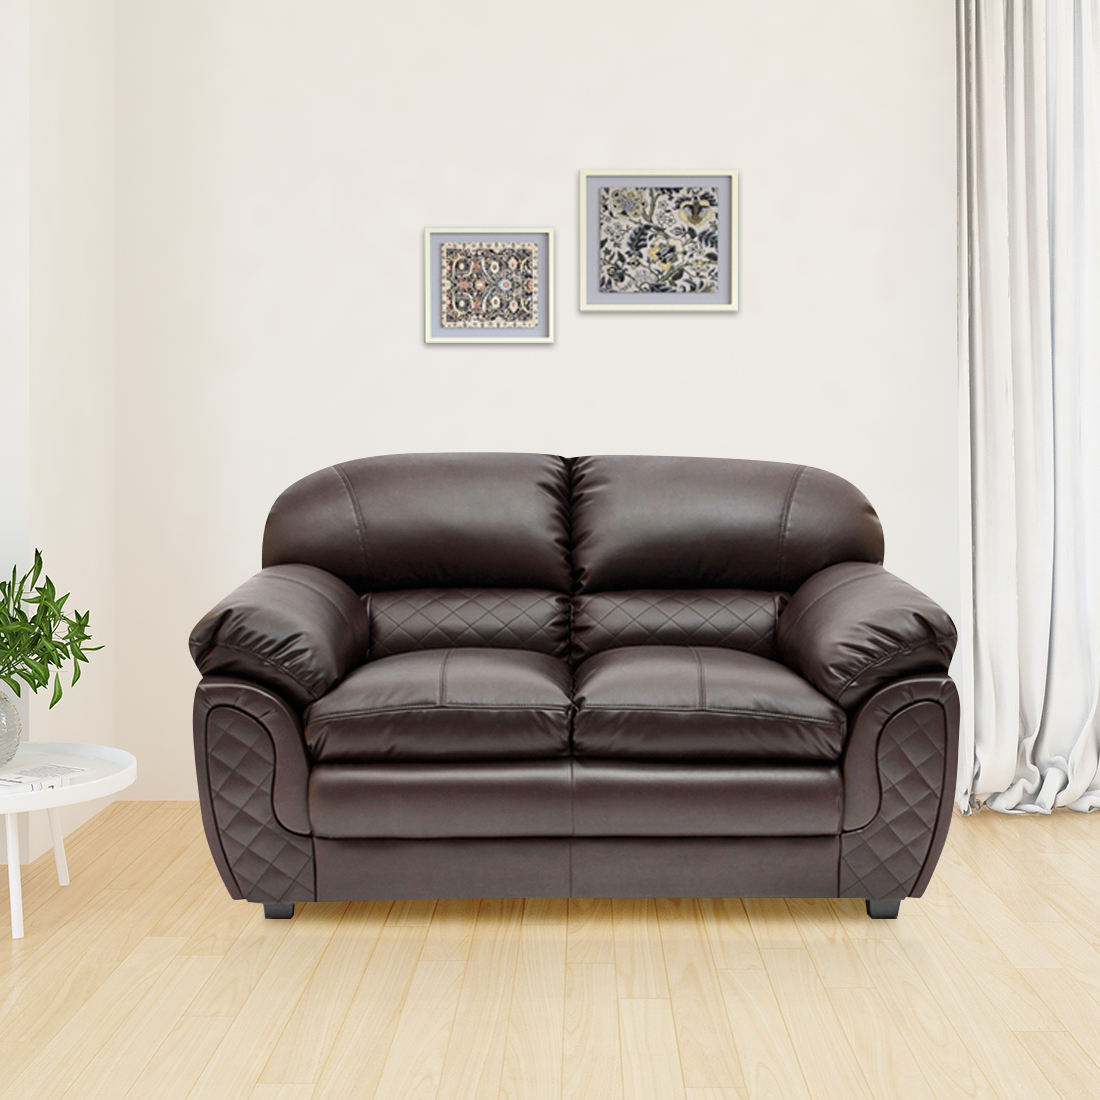 Mirage Leather Fabric Two Seater sofa in Brown Colour by HomeTown